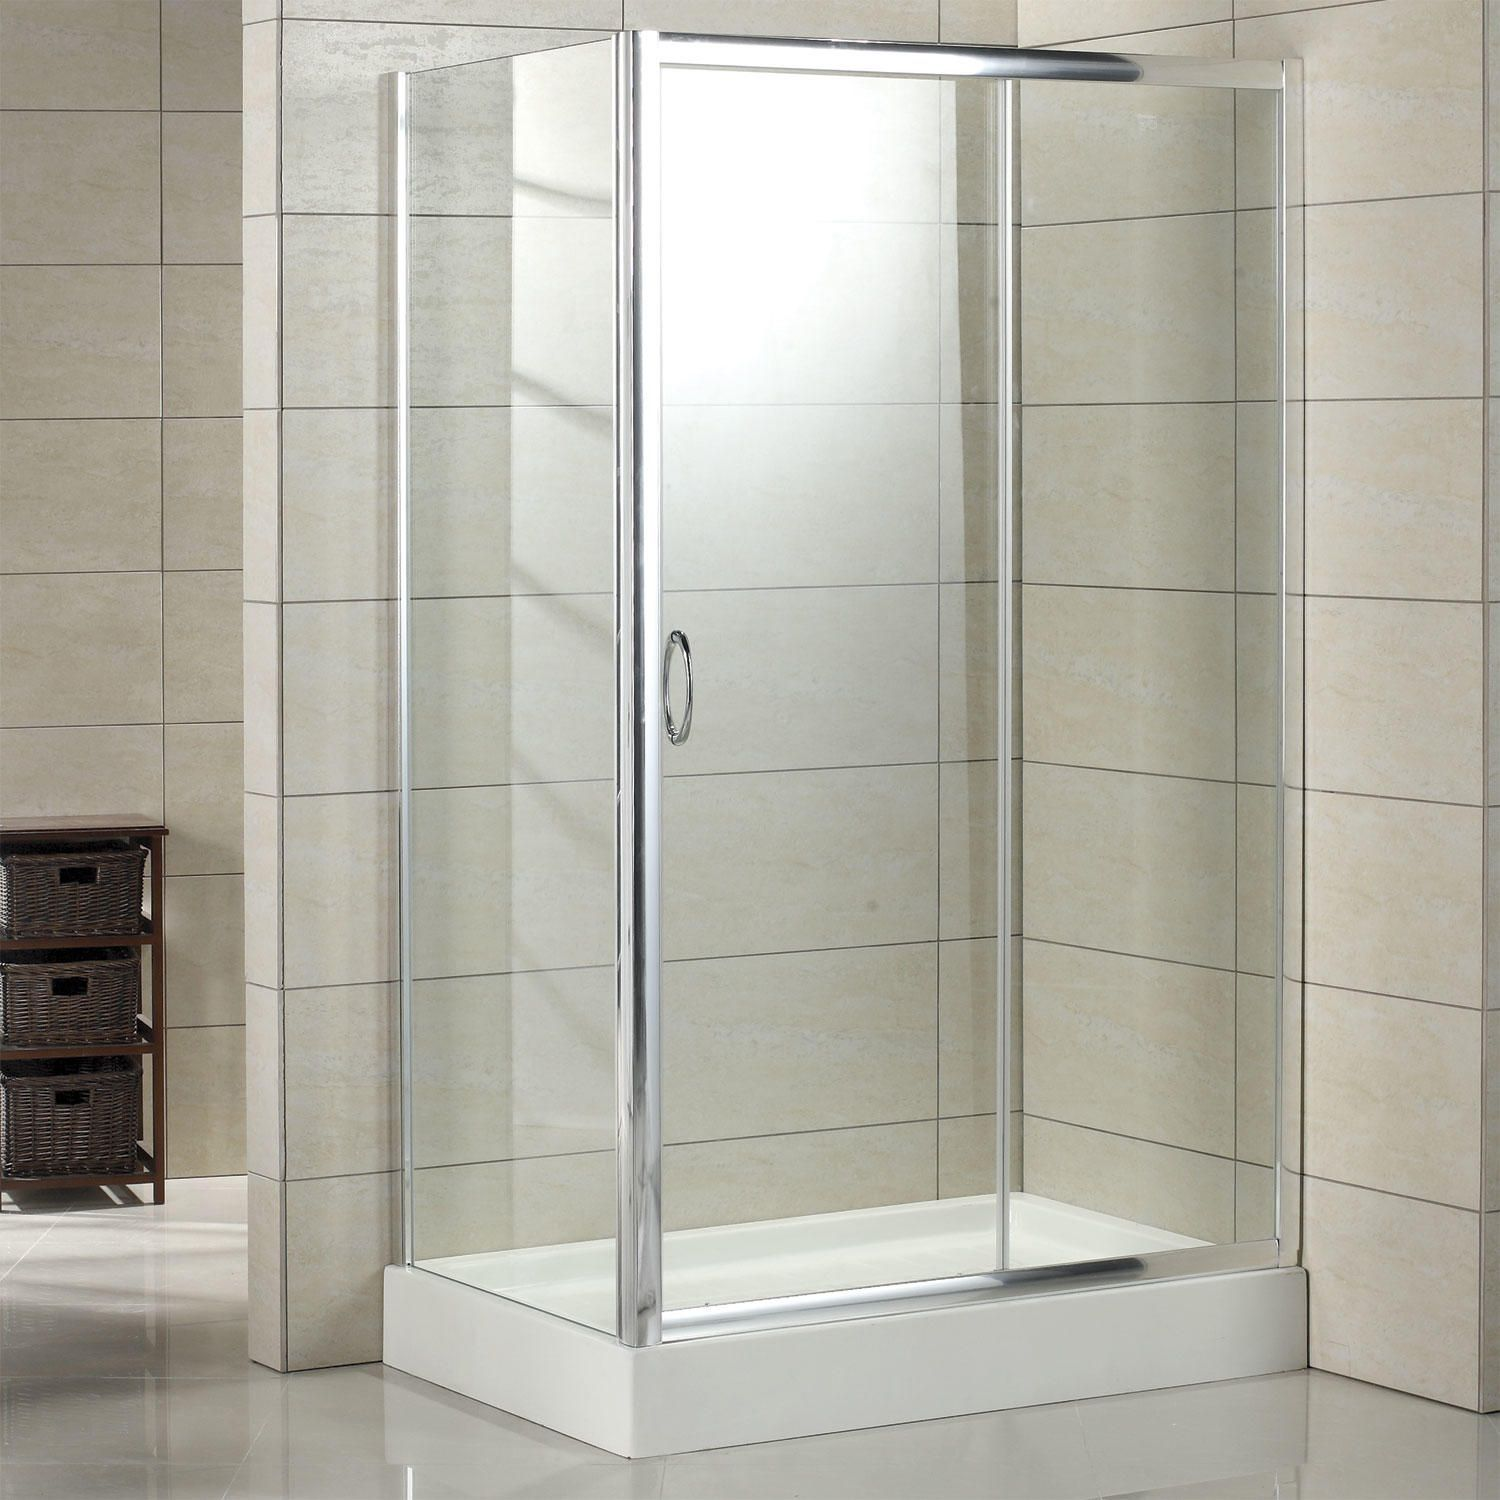 46 X 34 Kepner Reversible Corner Shower Enclosure With Tray Left Drain Polished